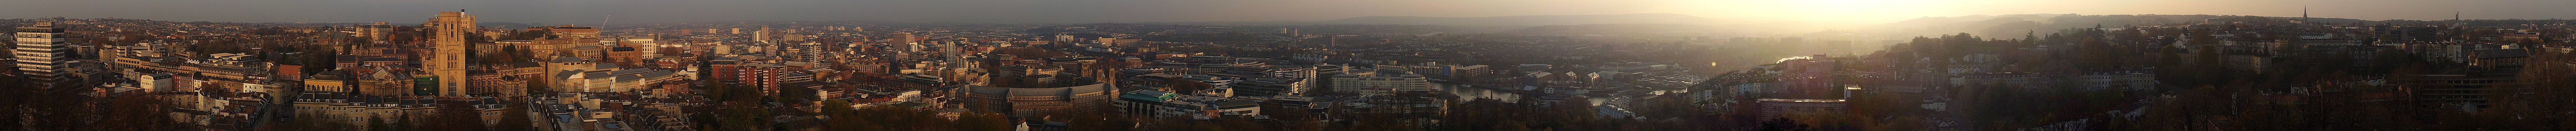 A photographic panorama of Bristol taken from the top of the Cabot Tower. The picture shows an urban environment with densely packed offices and older buildings. Hills can be seen in the distance.